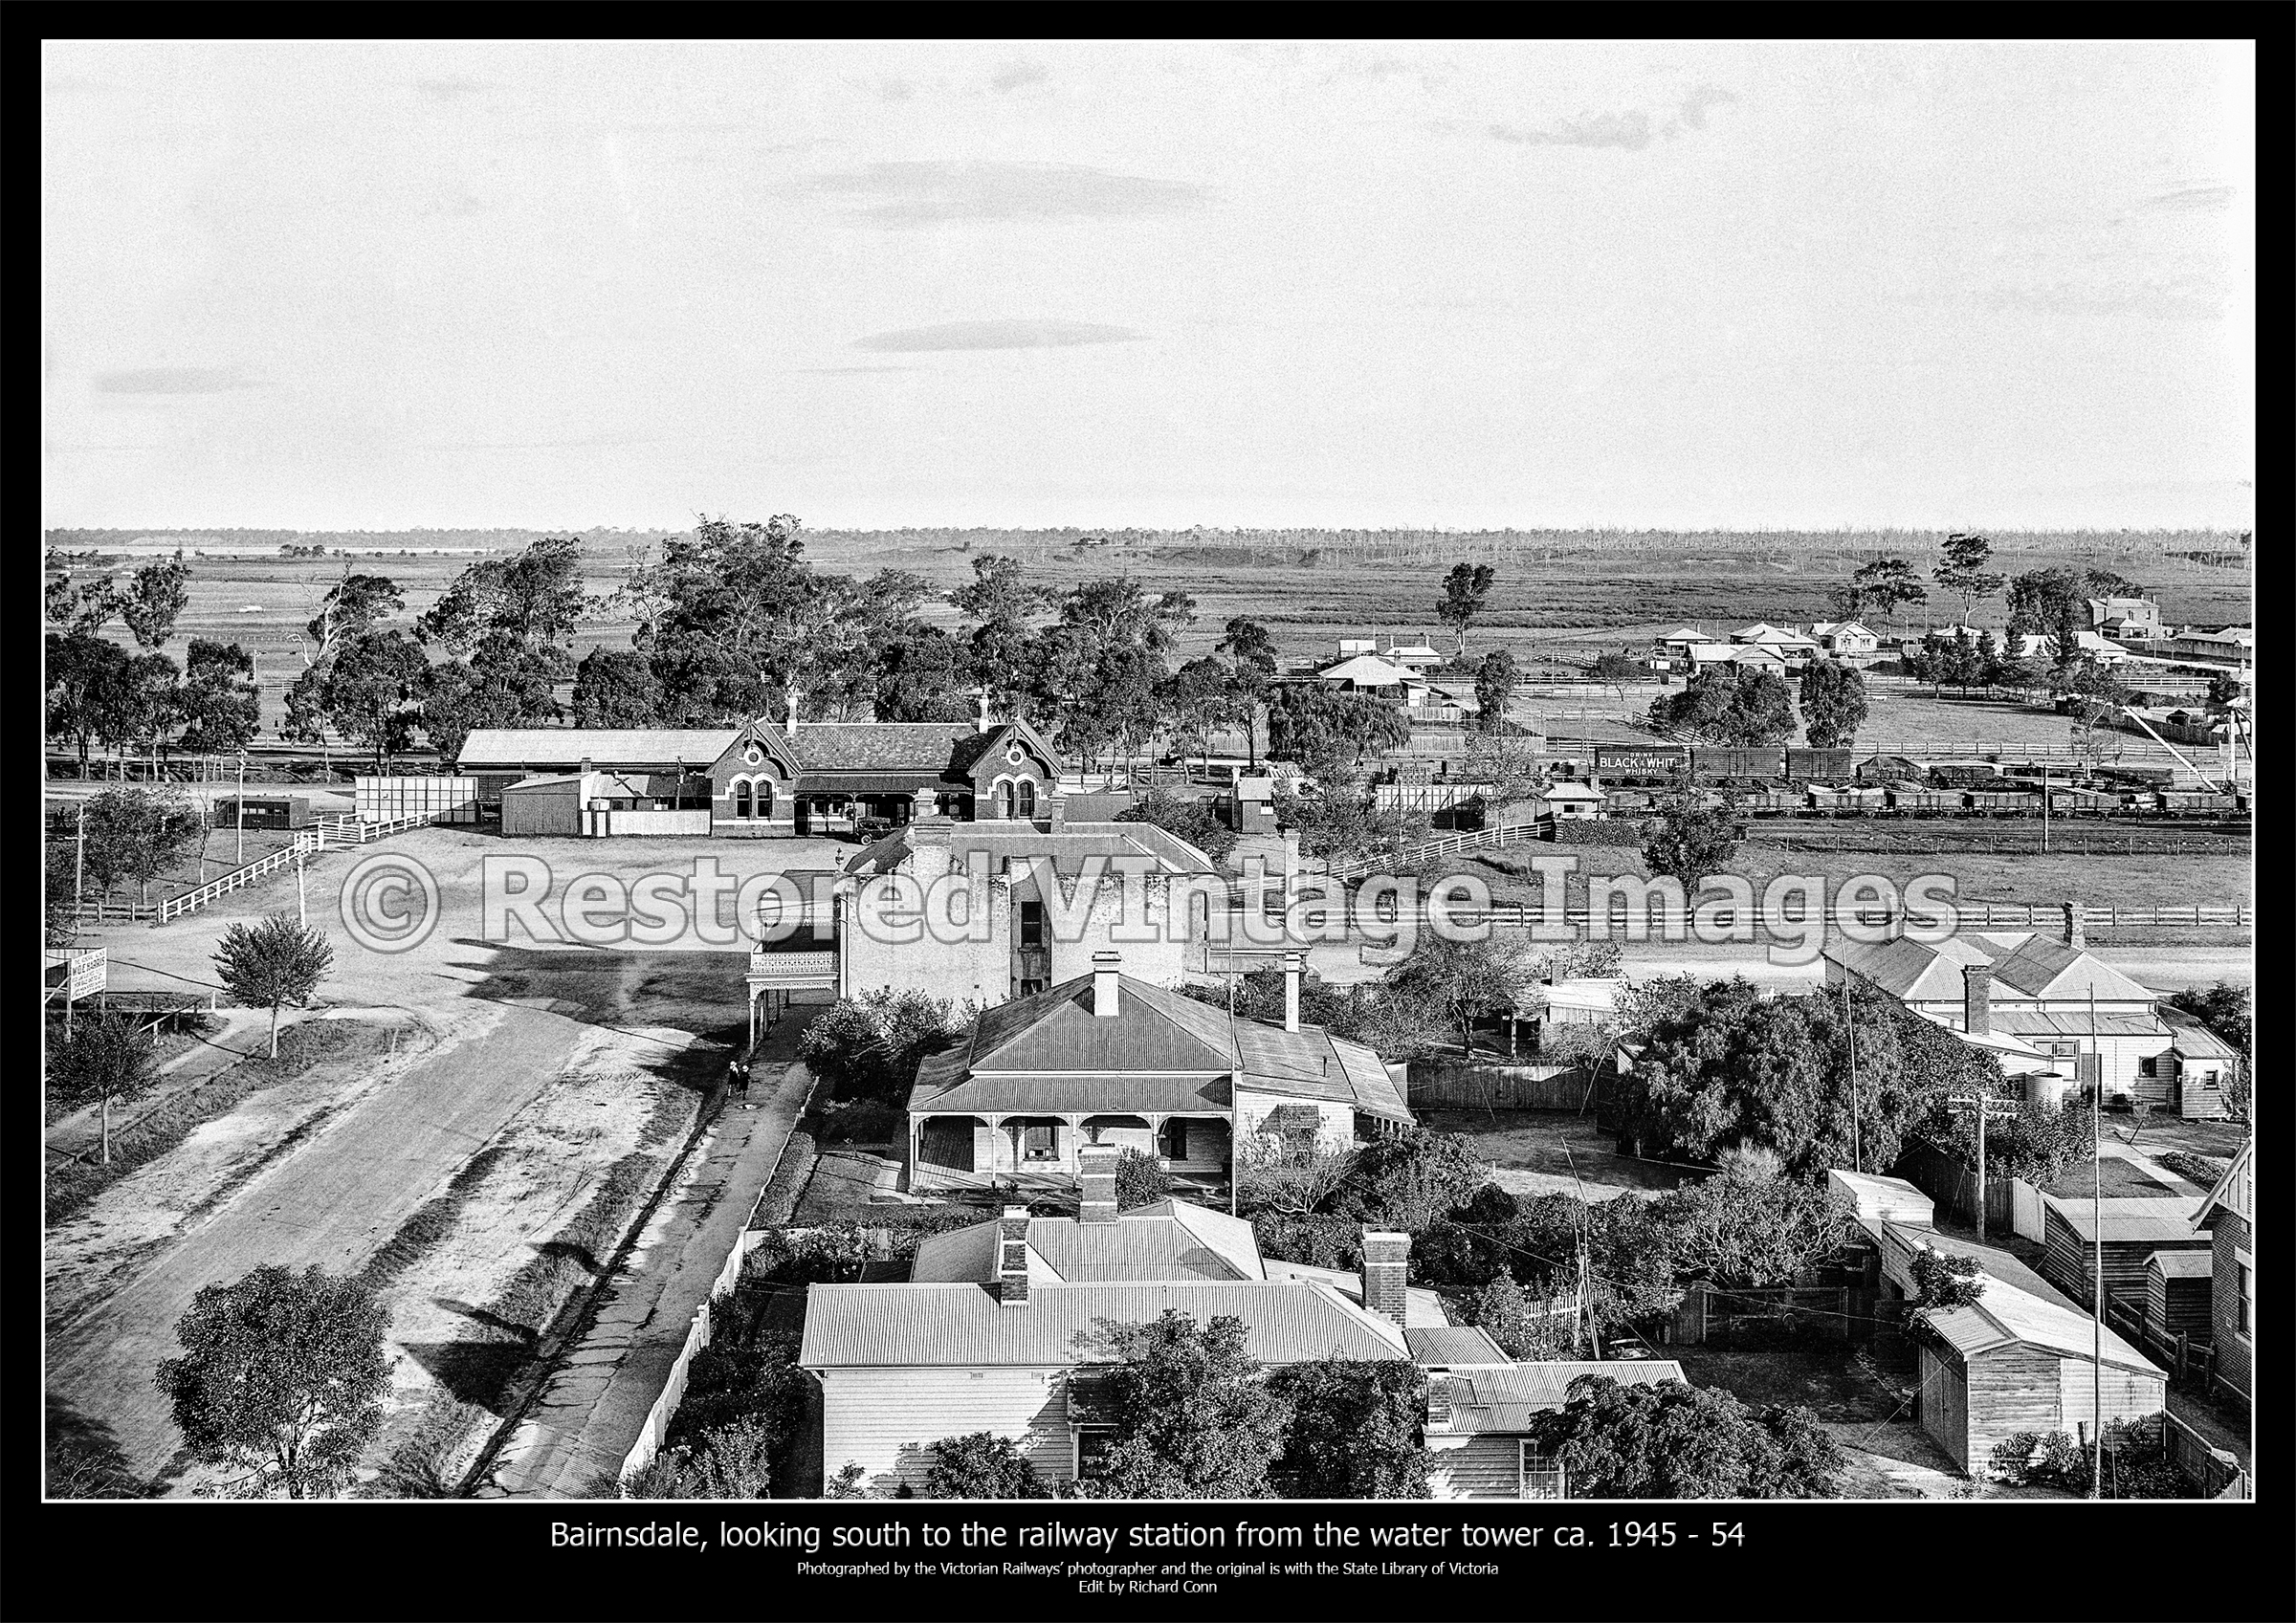 Bairnsdale, Looking South To The Railway Station Ca. 1945 – 54